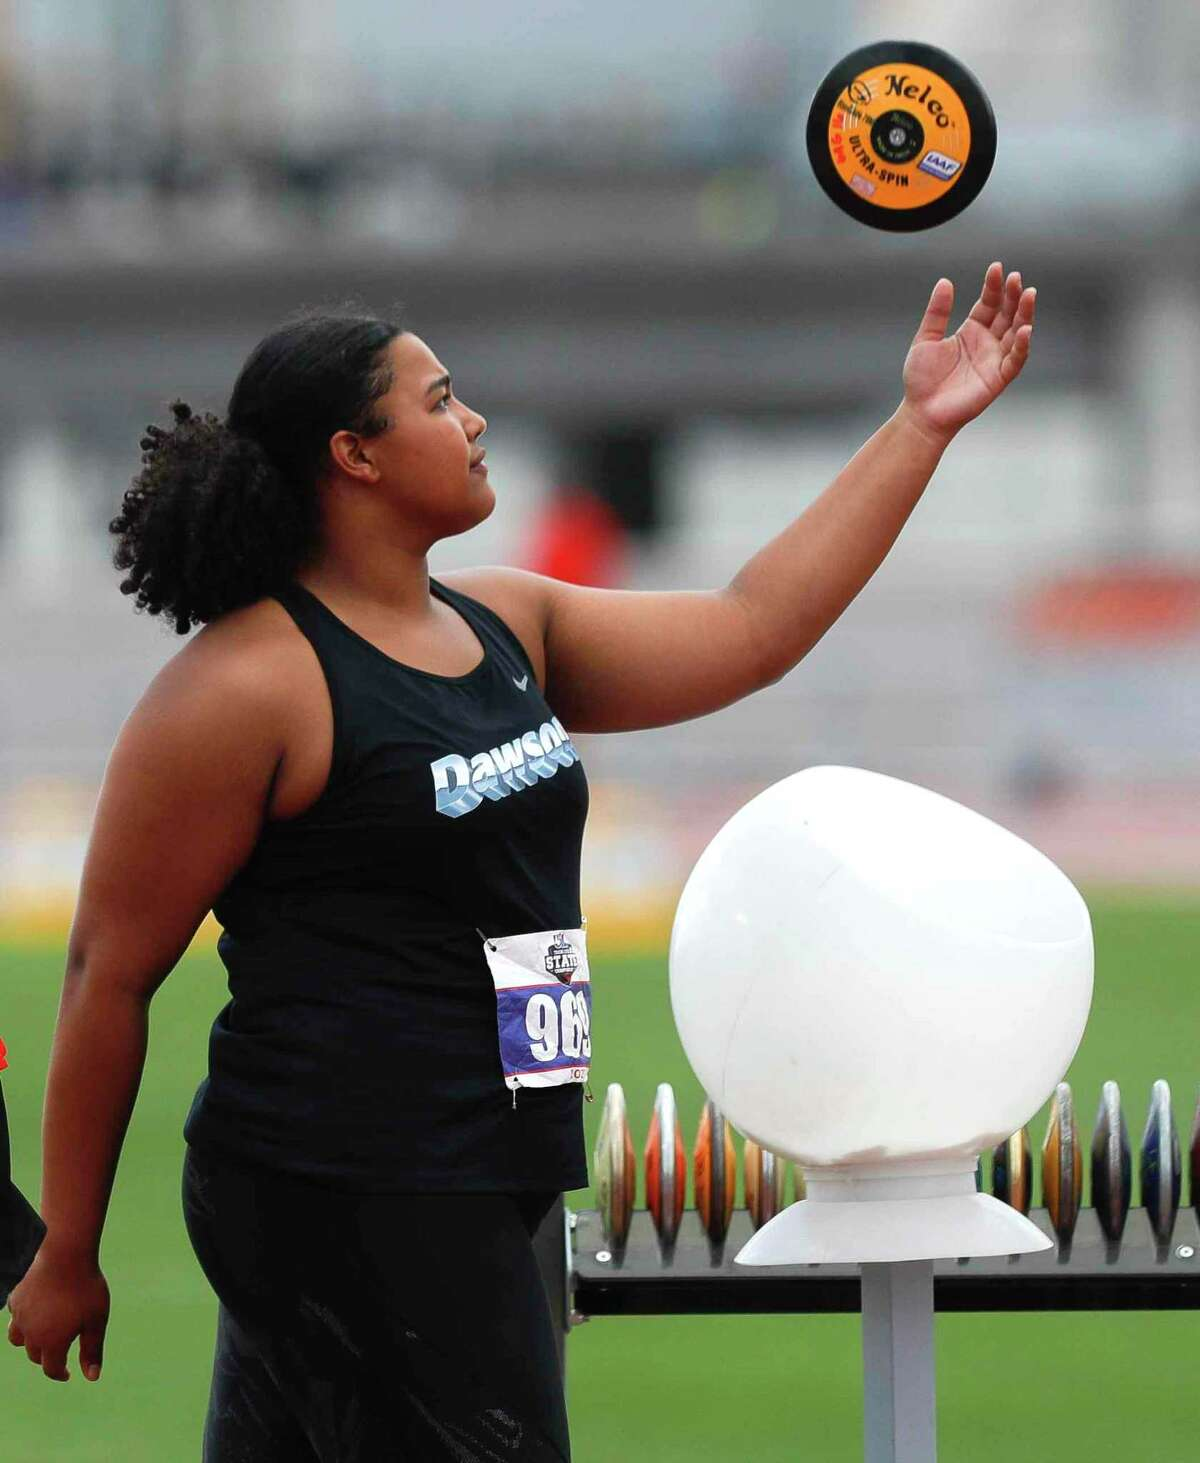 Chrystal Herpin of Dawson tosses a discus while waiting to throw at the Class 6A UIL Track and Field Championships Saturday at Mike A. Myers Stadium in Austin.